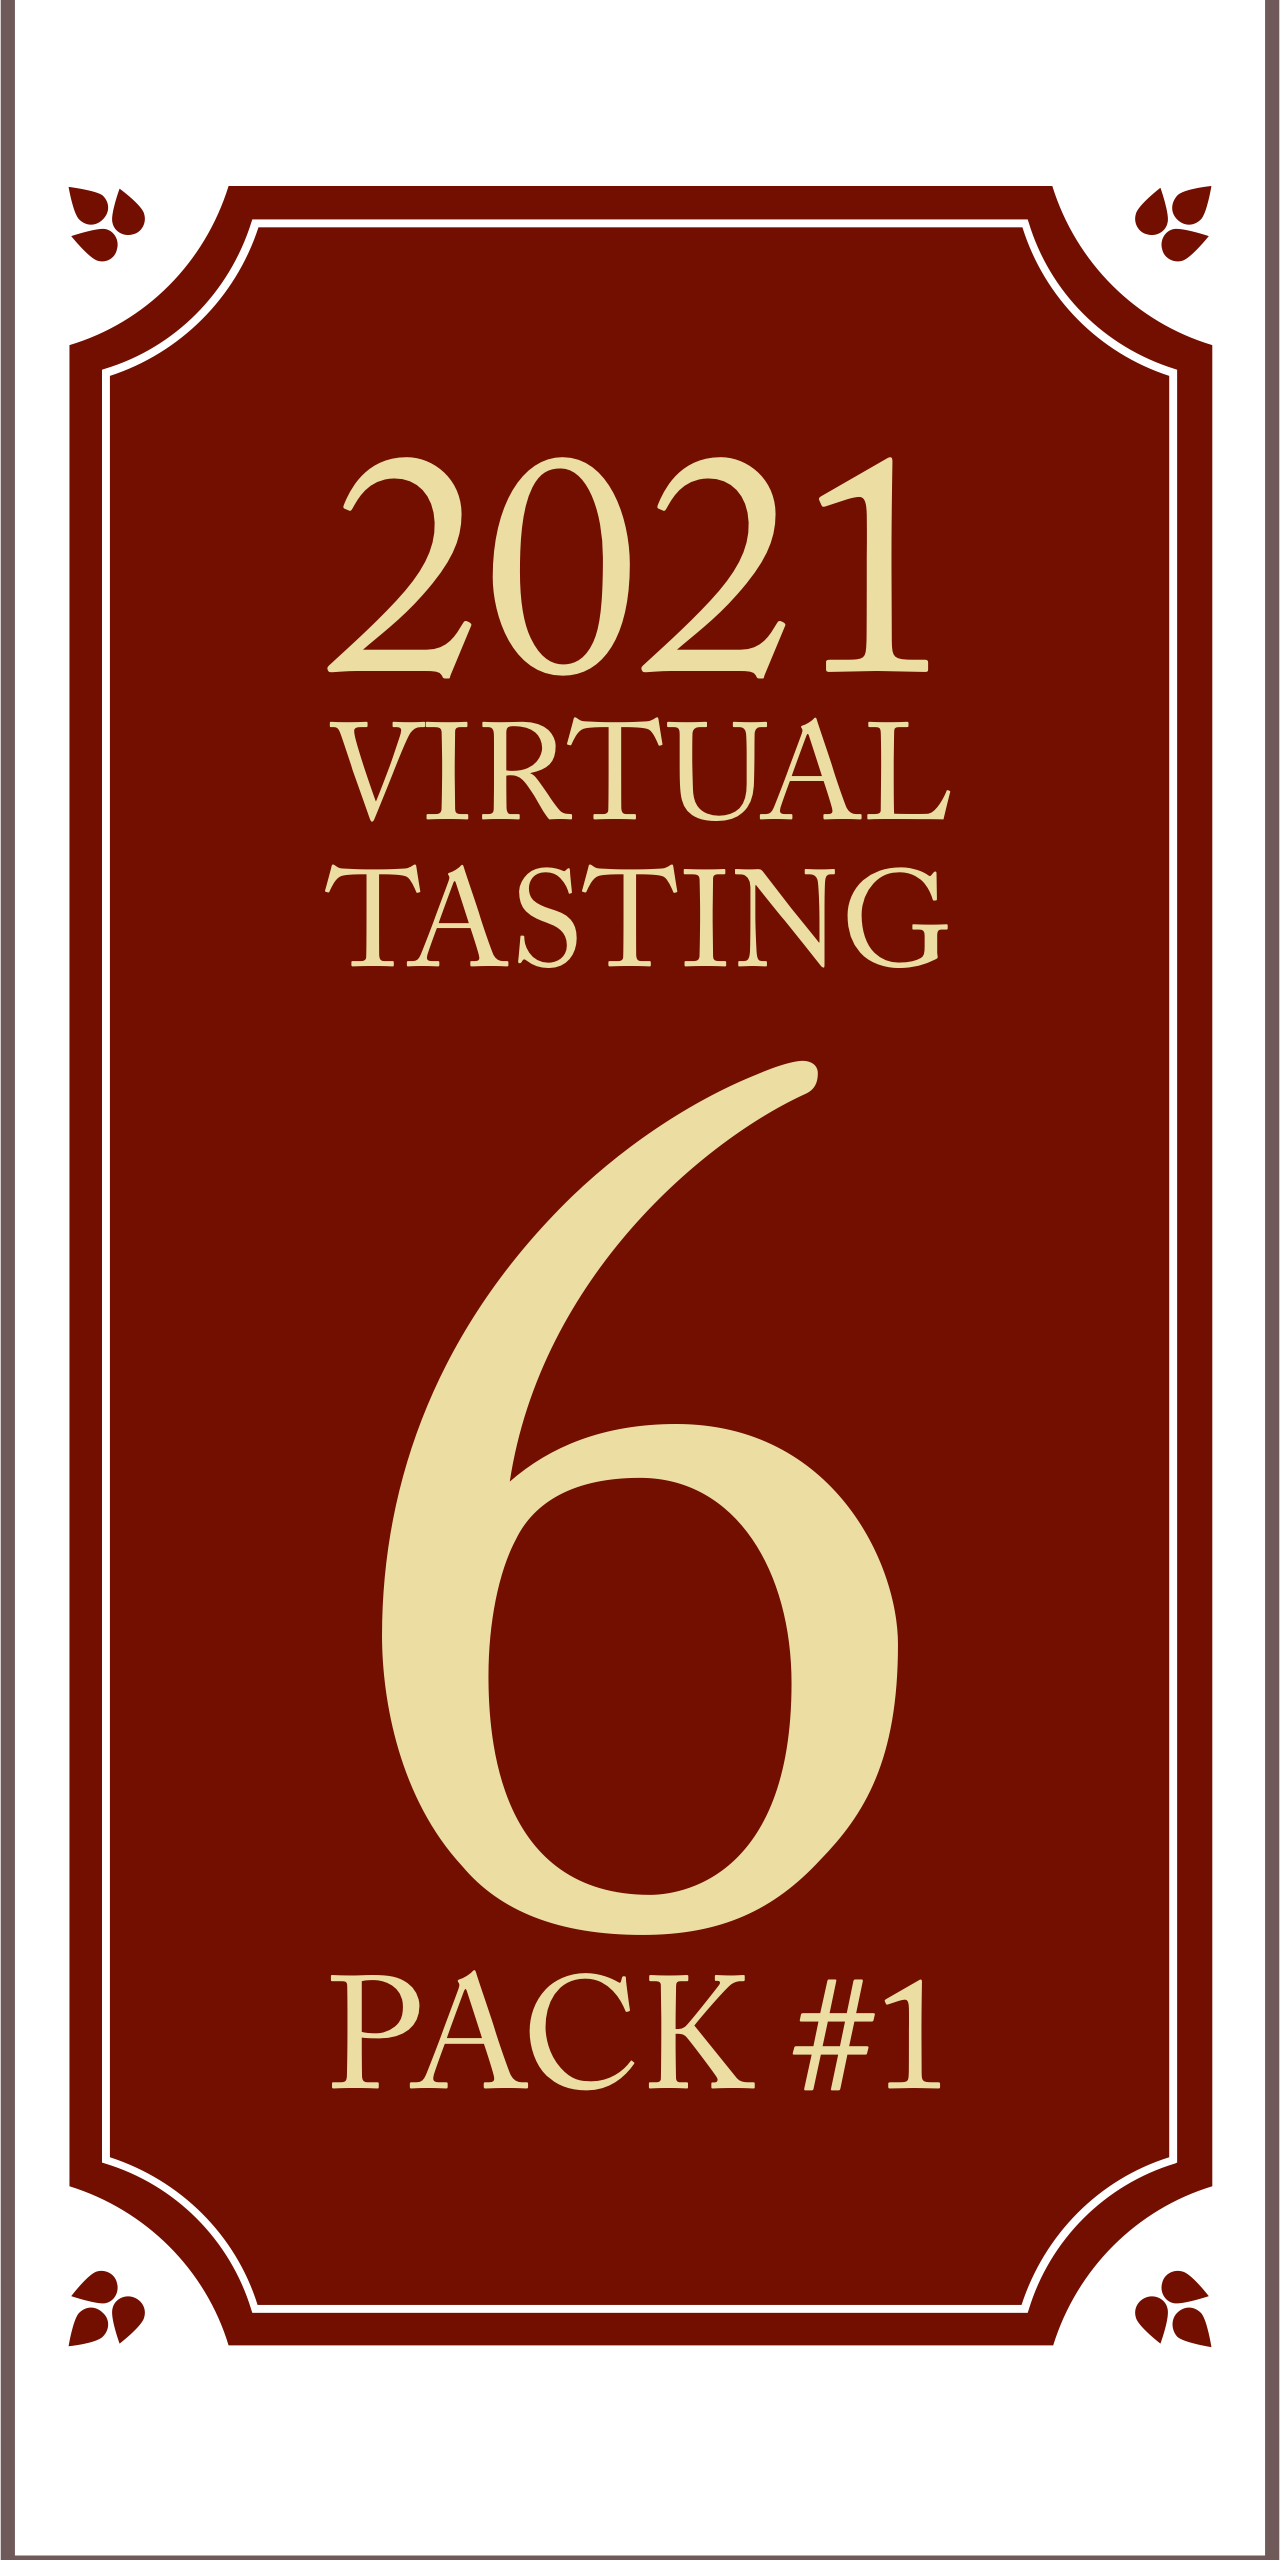 2021 Virtual Tasting 6 pack #1 (6x750ml)